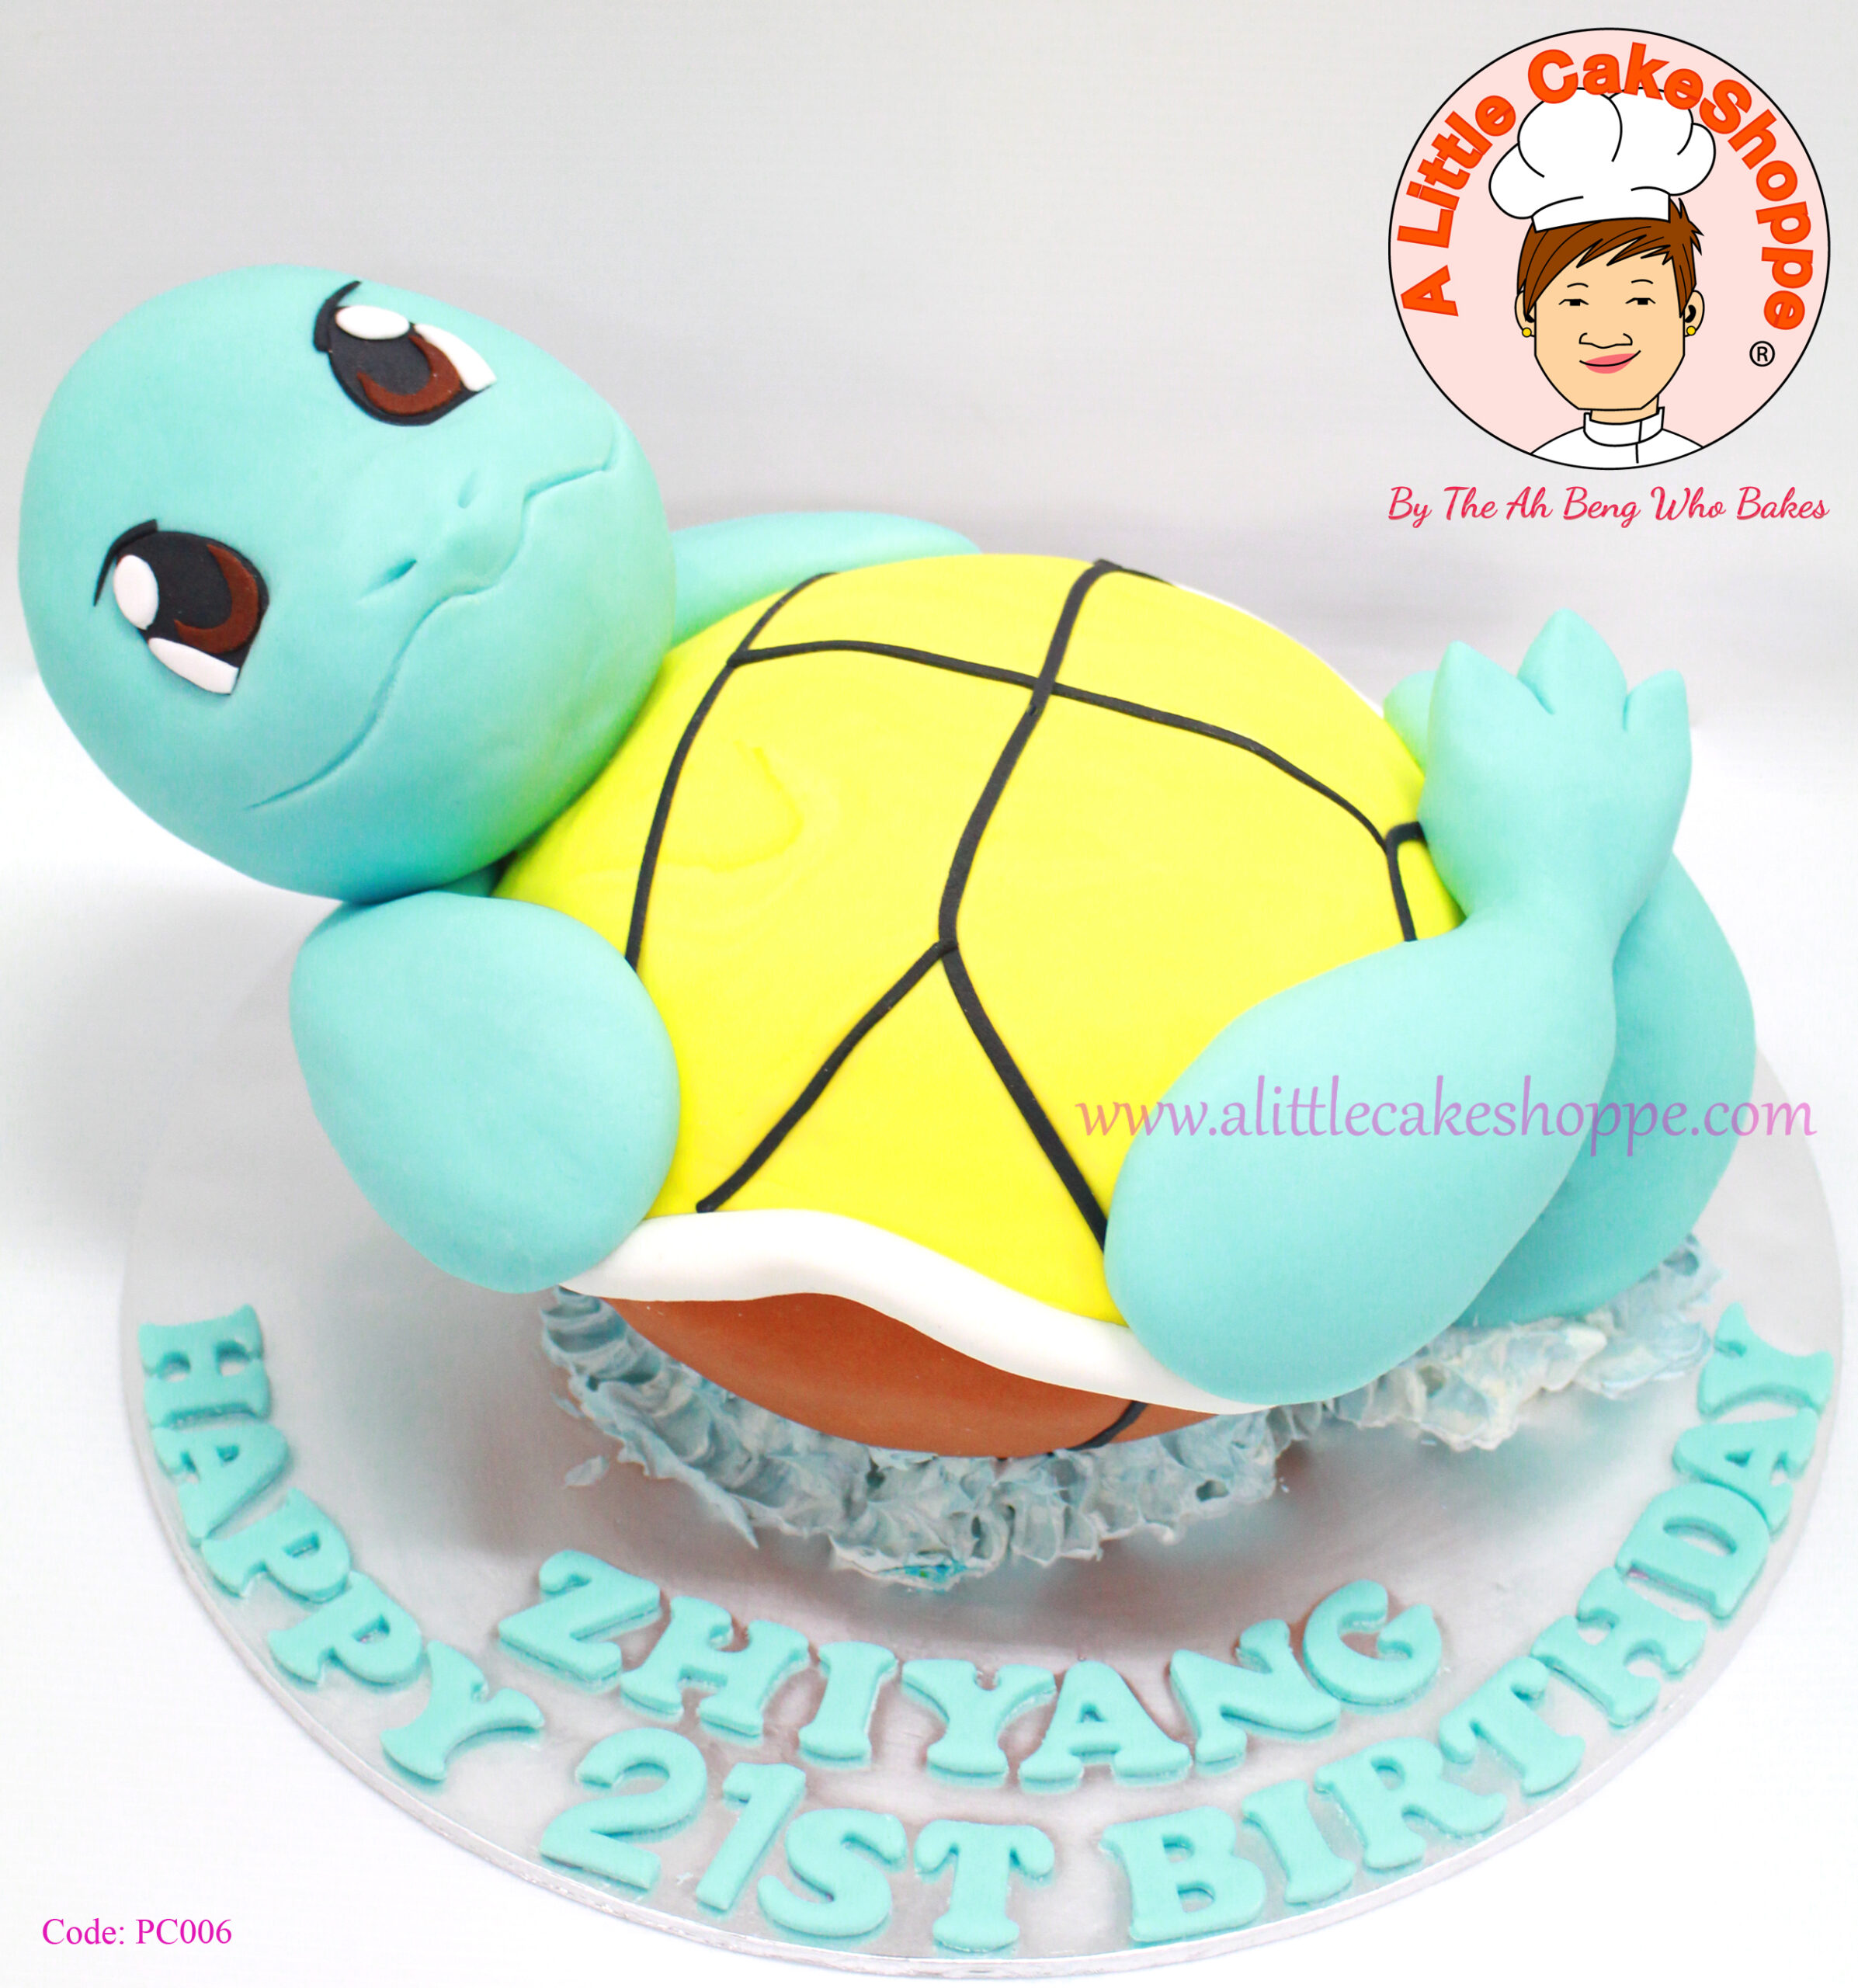 Best Customised Cake Shop Singapore custom cake 2D 3D birthday cake cupcakes desserts wedding corporate events anniversary 1st birthday 21st birthday fondant fresh cream buttercream cakes alittlecakeshoppe a little cake shoppe compliments review singapore bakers SG cake shop cakeshop ah beng who bakes pokemon squirtle